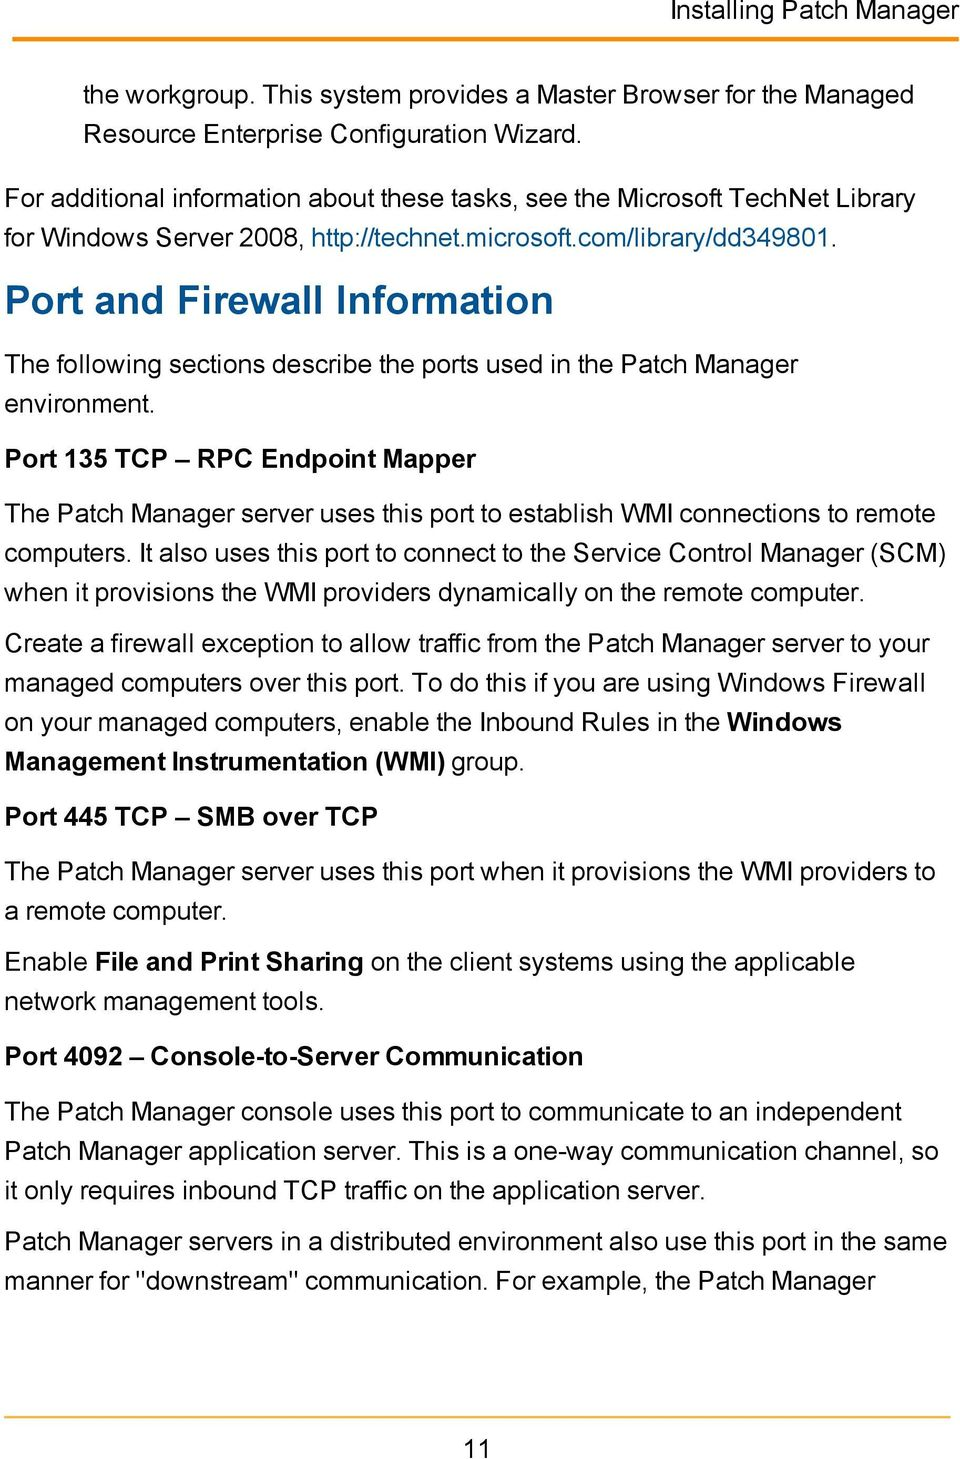 Port and Firewall Information The following sections describe the ports used in the Patch Manager environment.